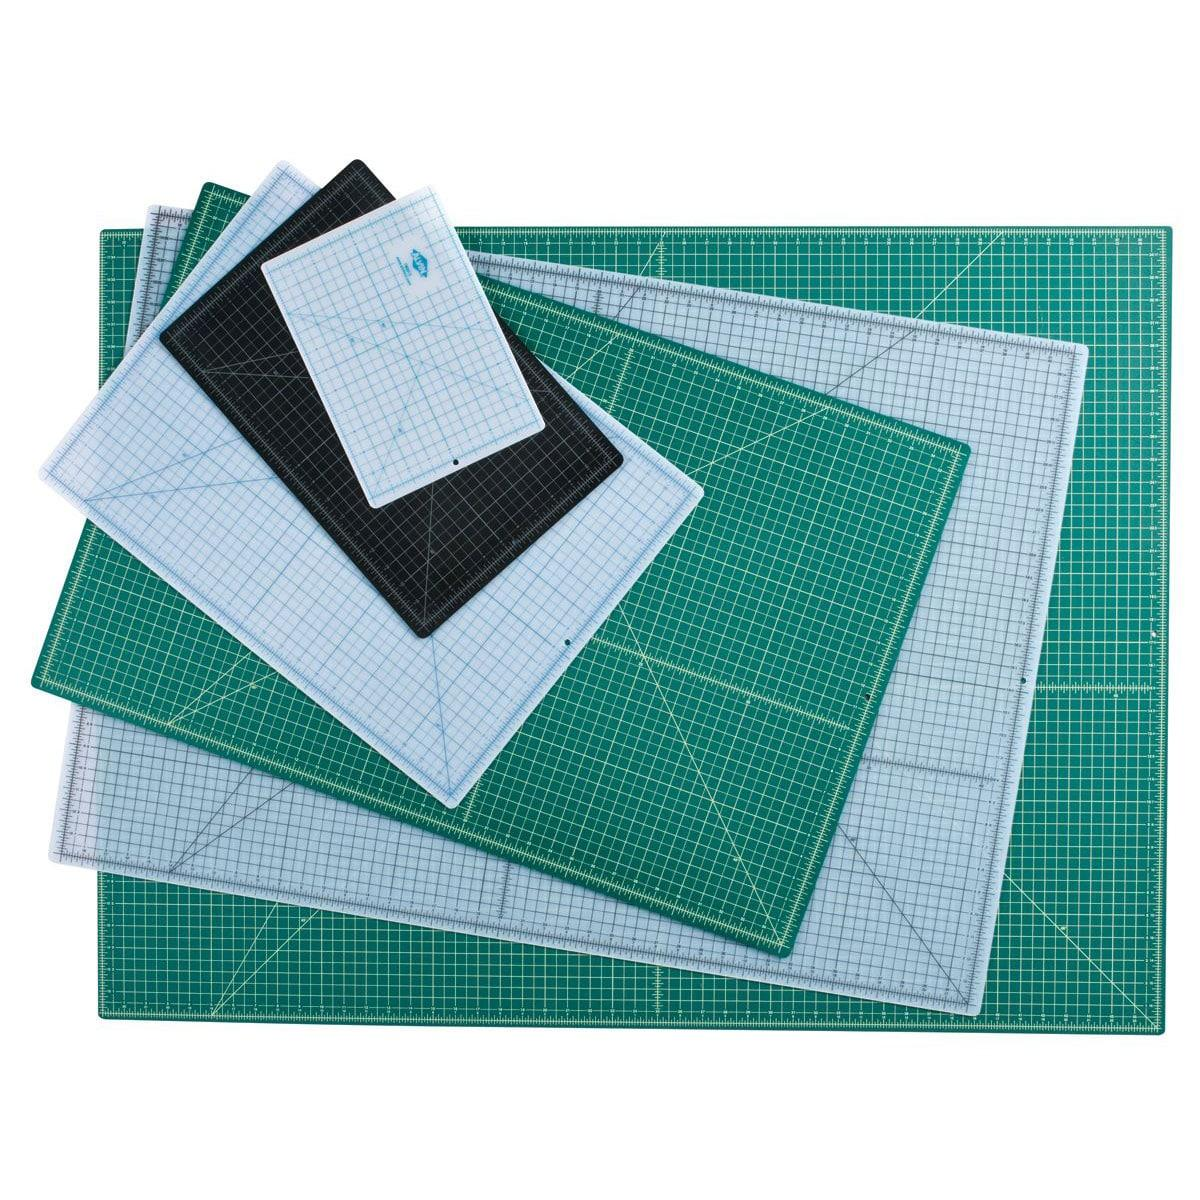 Self Healing Cutting Mats Talas